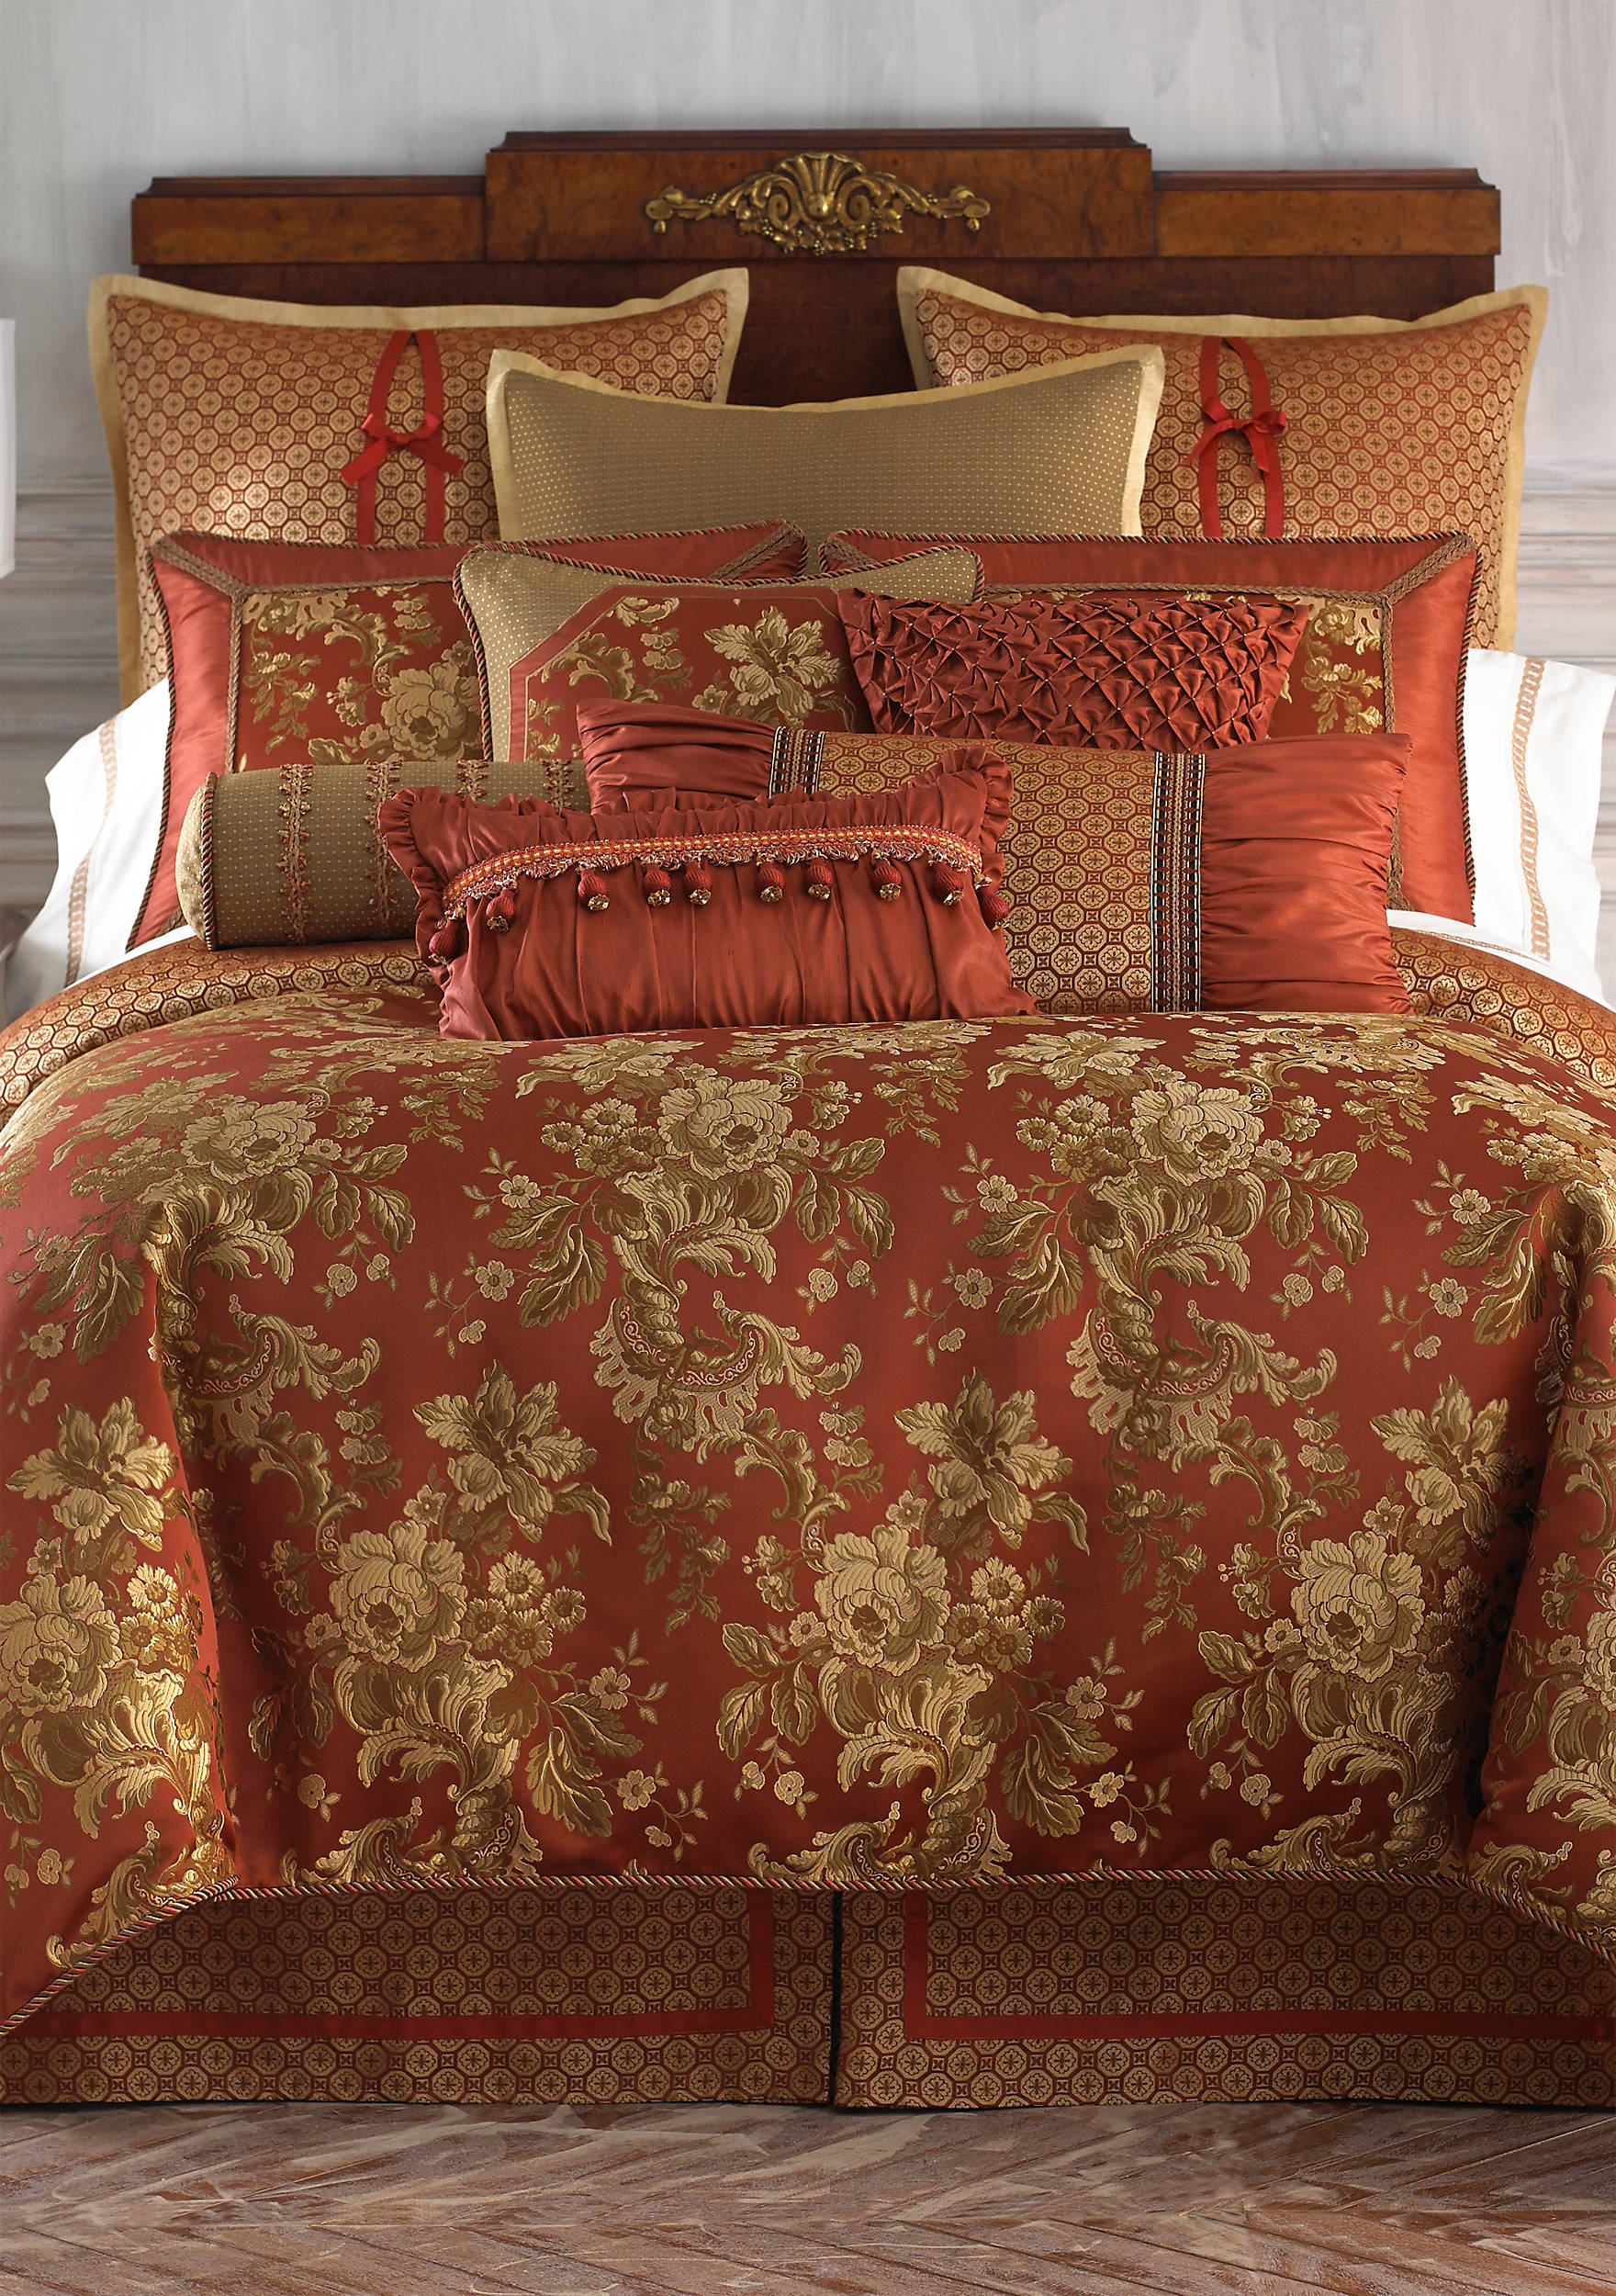 Waterford Linens Mackenna Queen Duvet Cover Shop Outlet